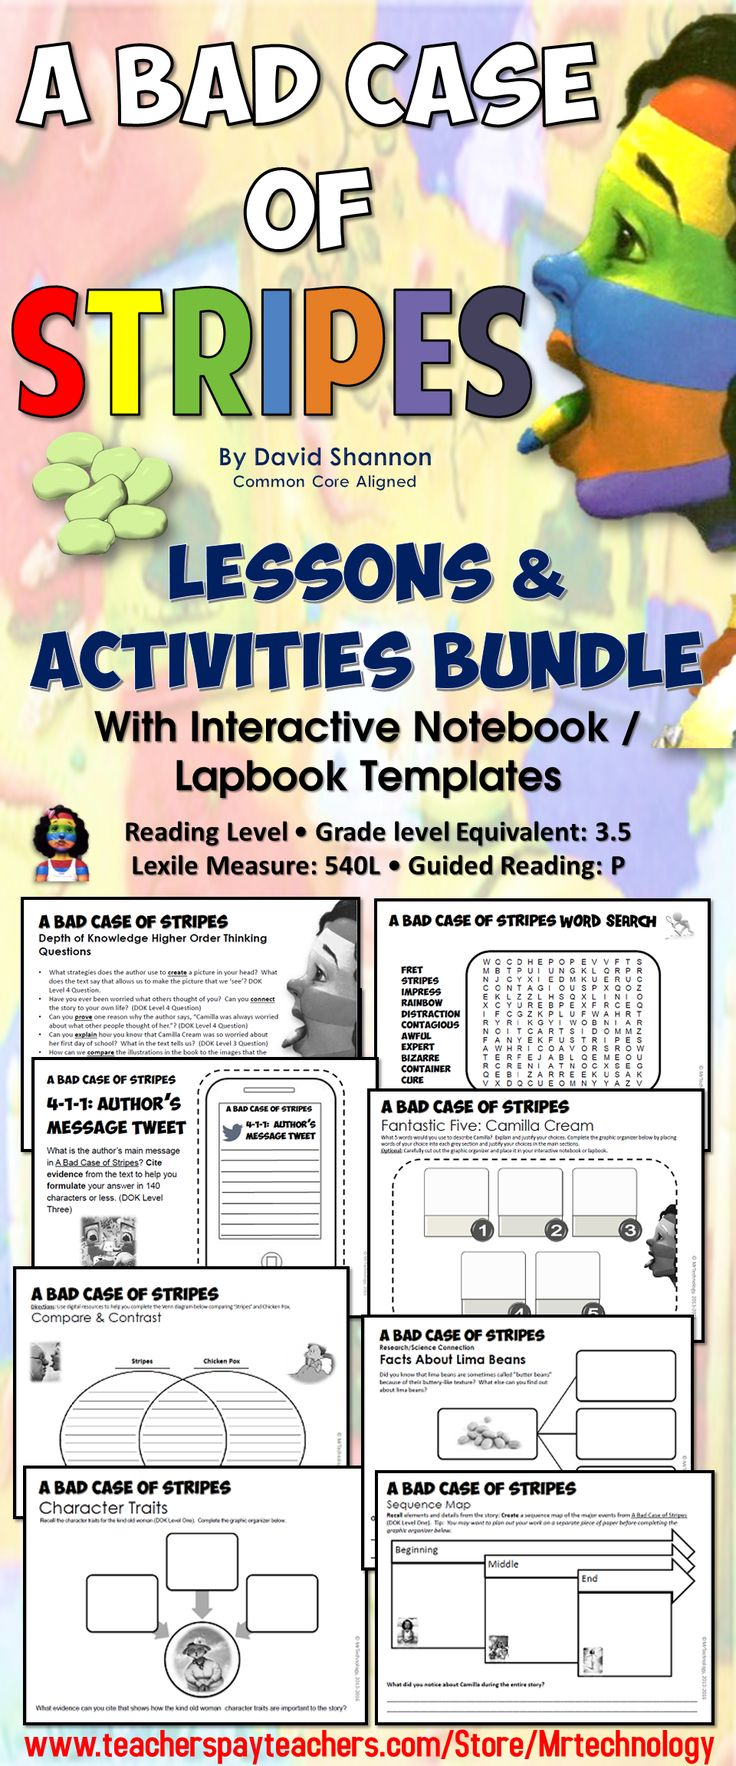 worksheet A Bad Case Of Stripes Worksheets 1000 ideas about david shannon on pinterest no a bad case of stripes by reading lessons activities bundle this product